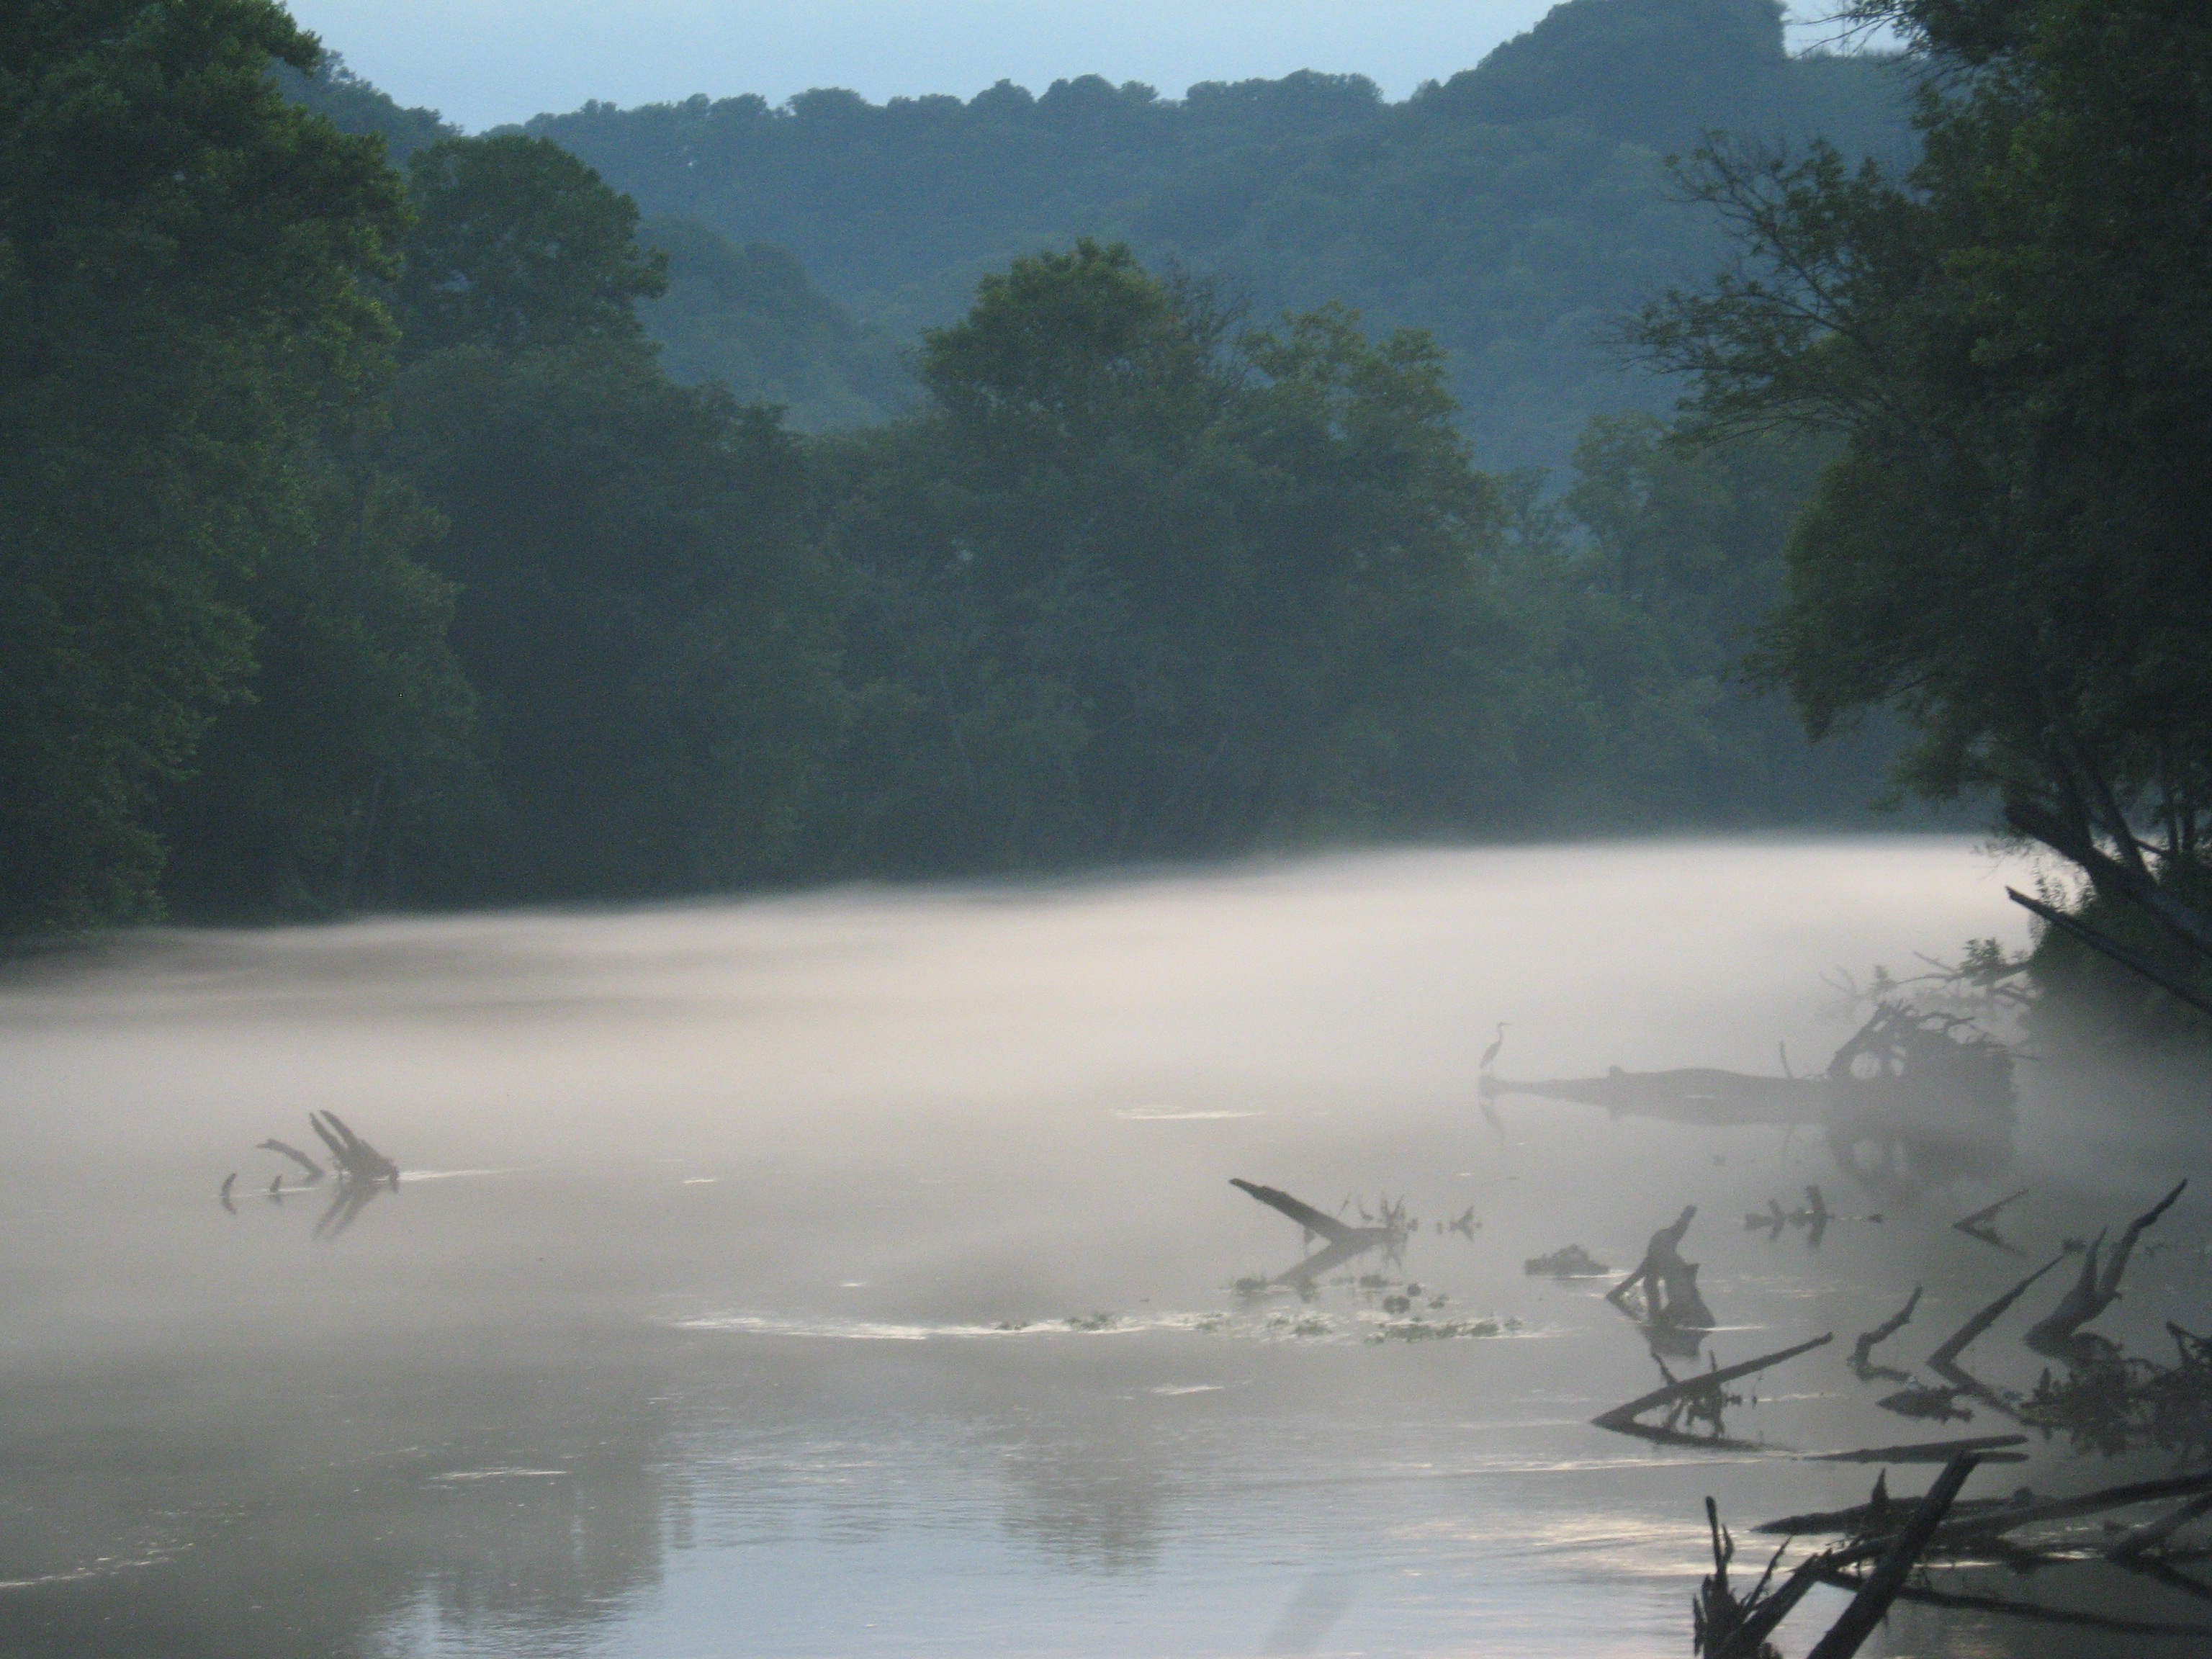 Buzzdflyfishing caney fork river for Center hill lake fishing report